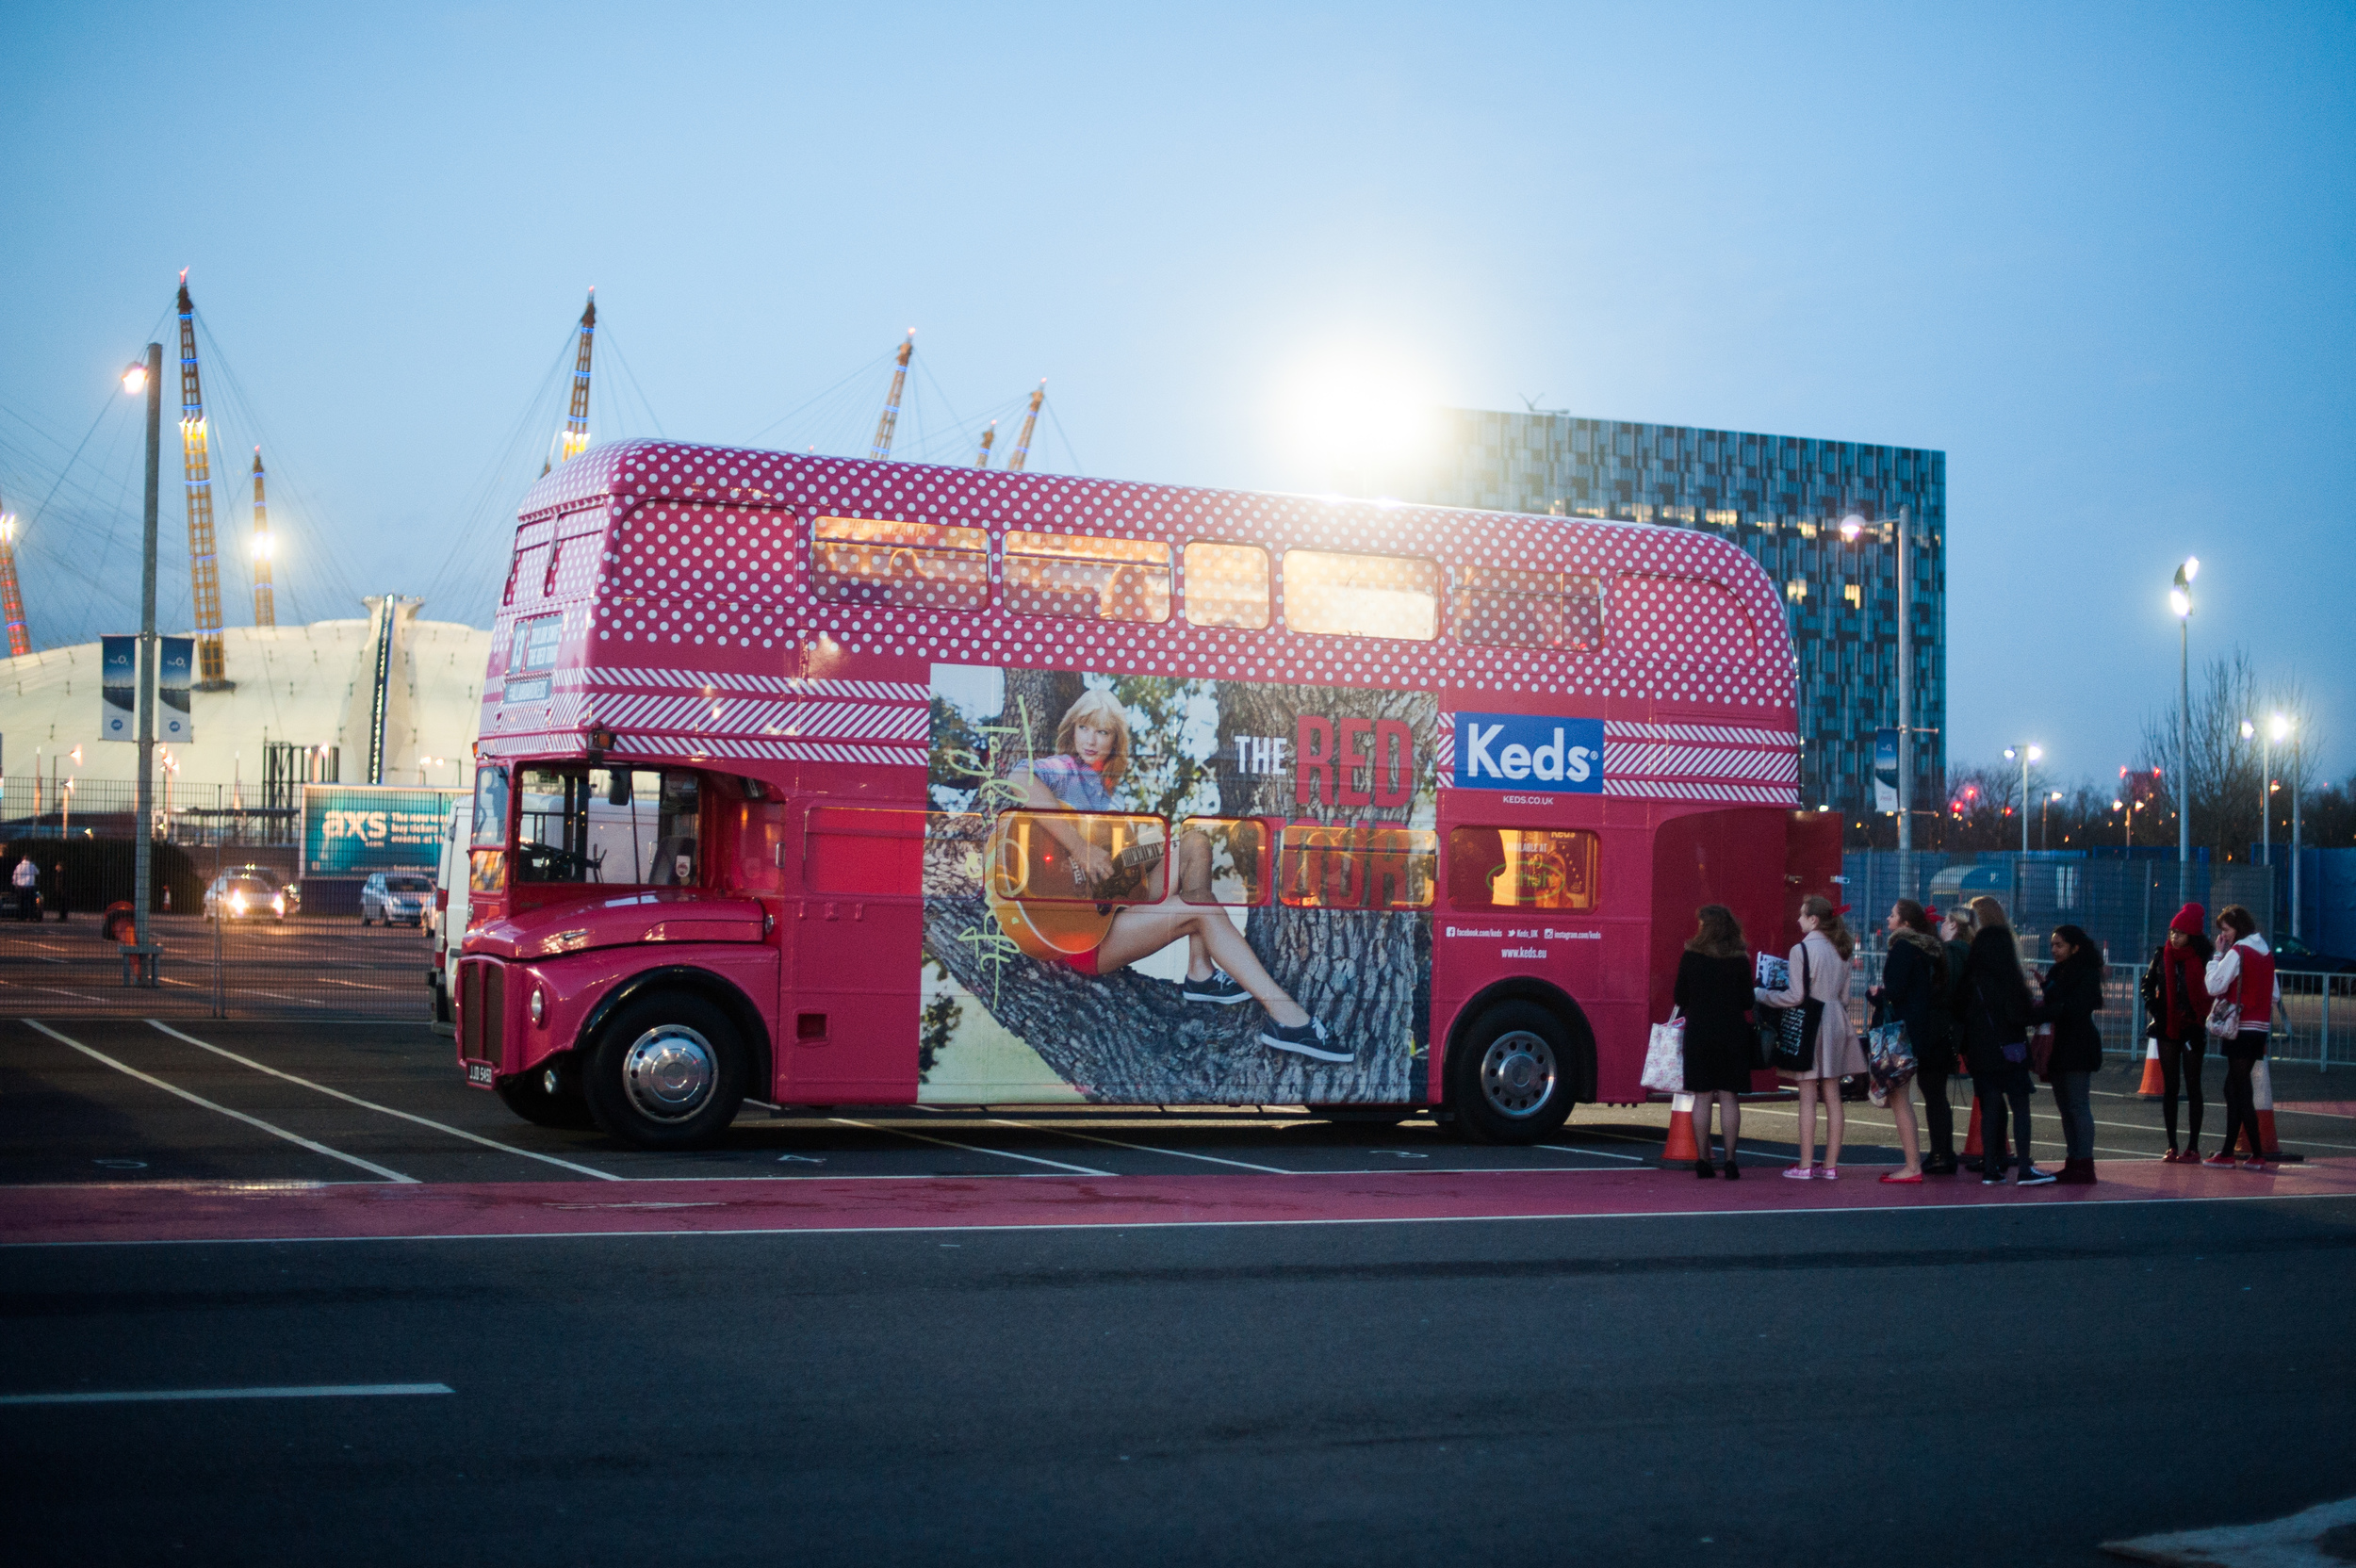 The Tour Bus at the O2